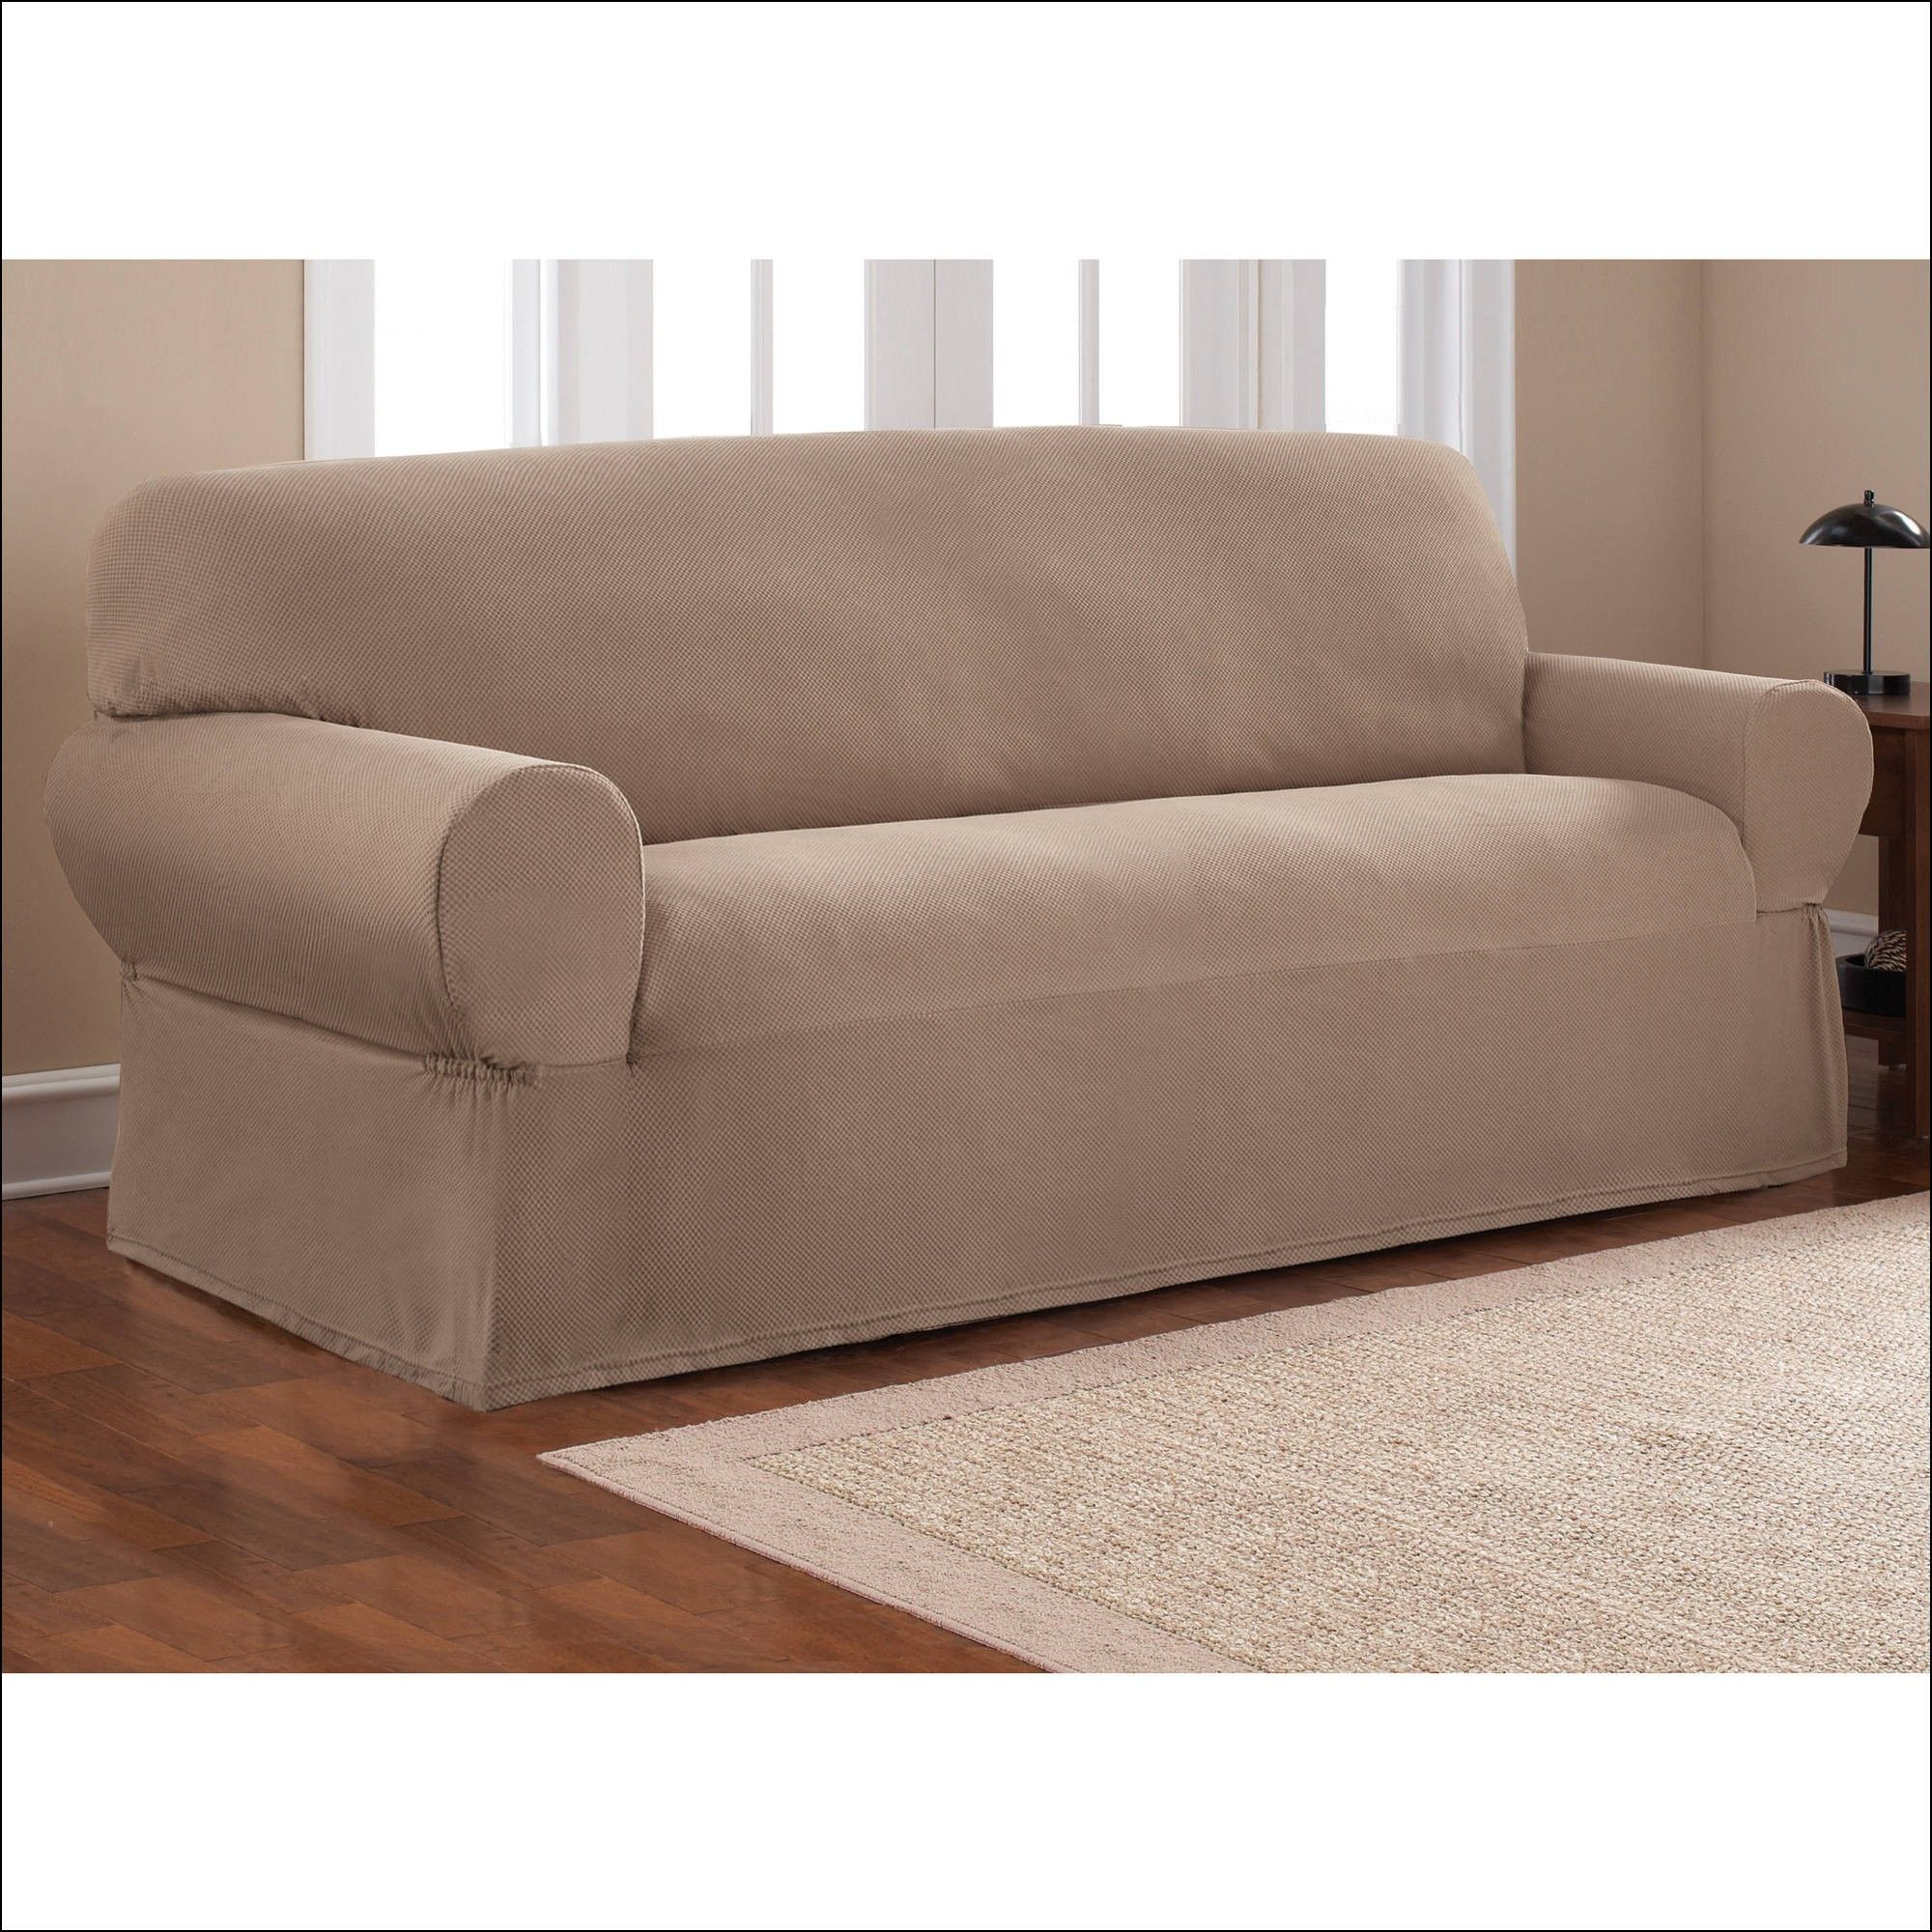 stretch slipcovers for couches couch sofa gallery pinterest rh pinterest co uk